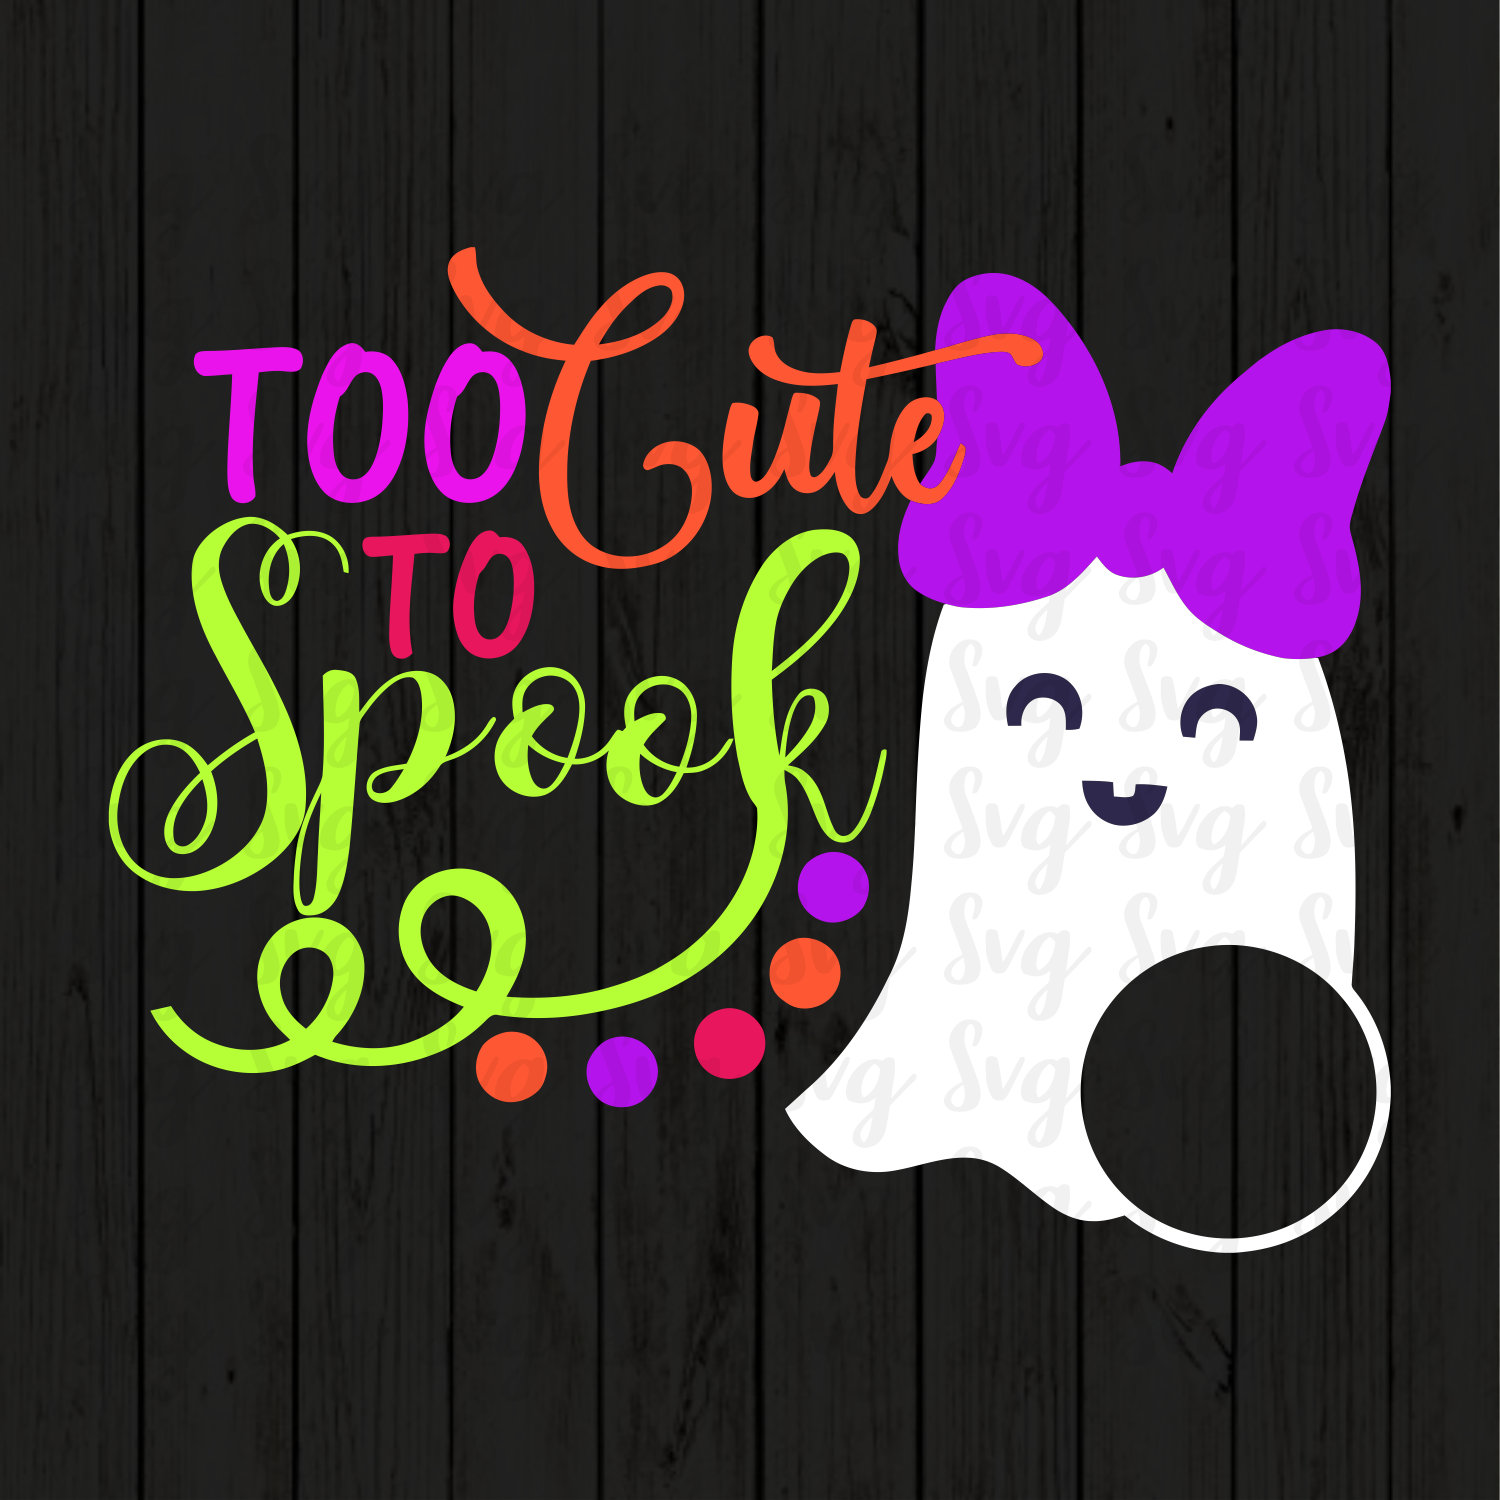 Too Cute To Spook Svg Halloween Svg Ghost Svgs Ghost Monogram Svg Ghost Svg Boo Svg Halloween Cut File Halloween Svg Design Svg For Mobile Svg For Cricut